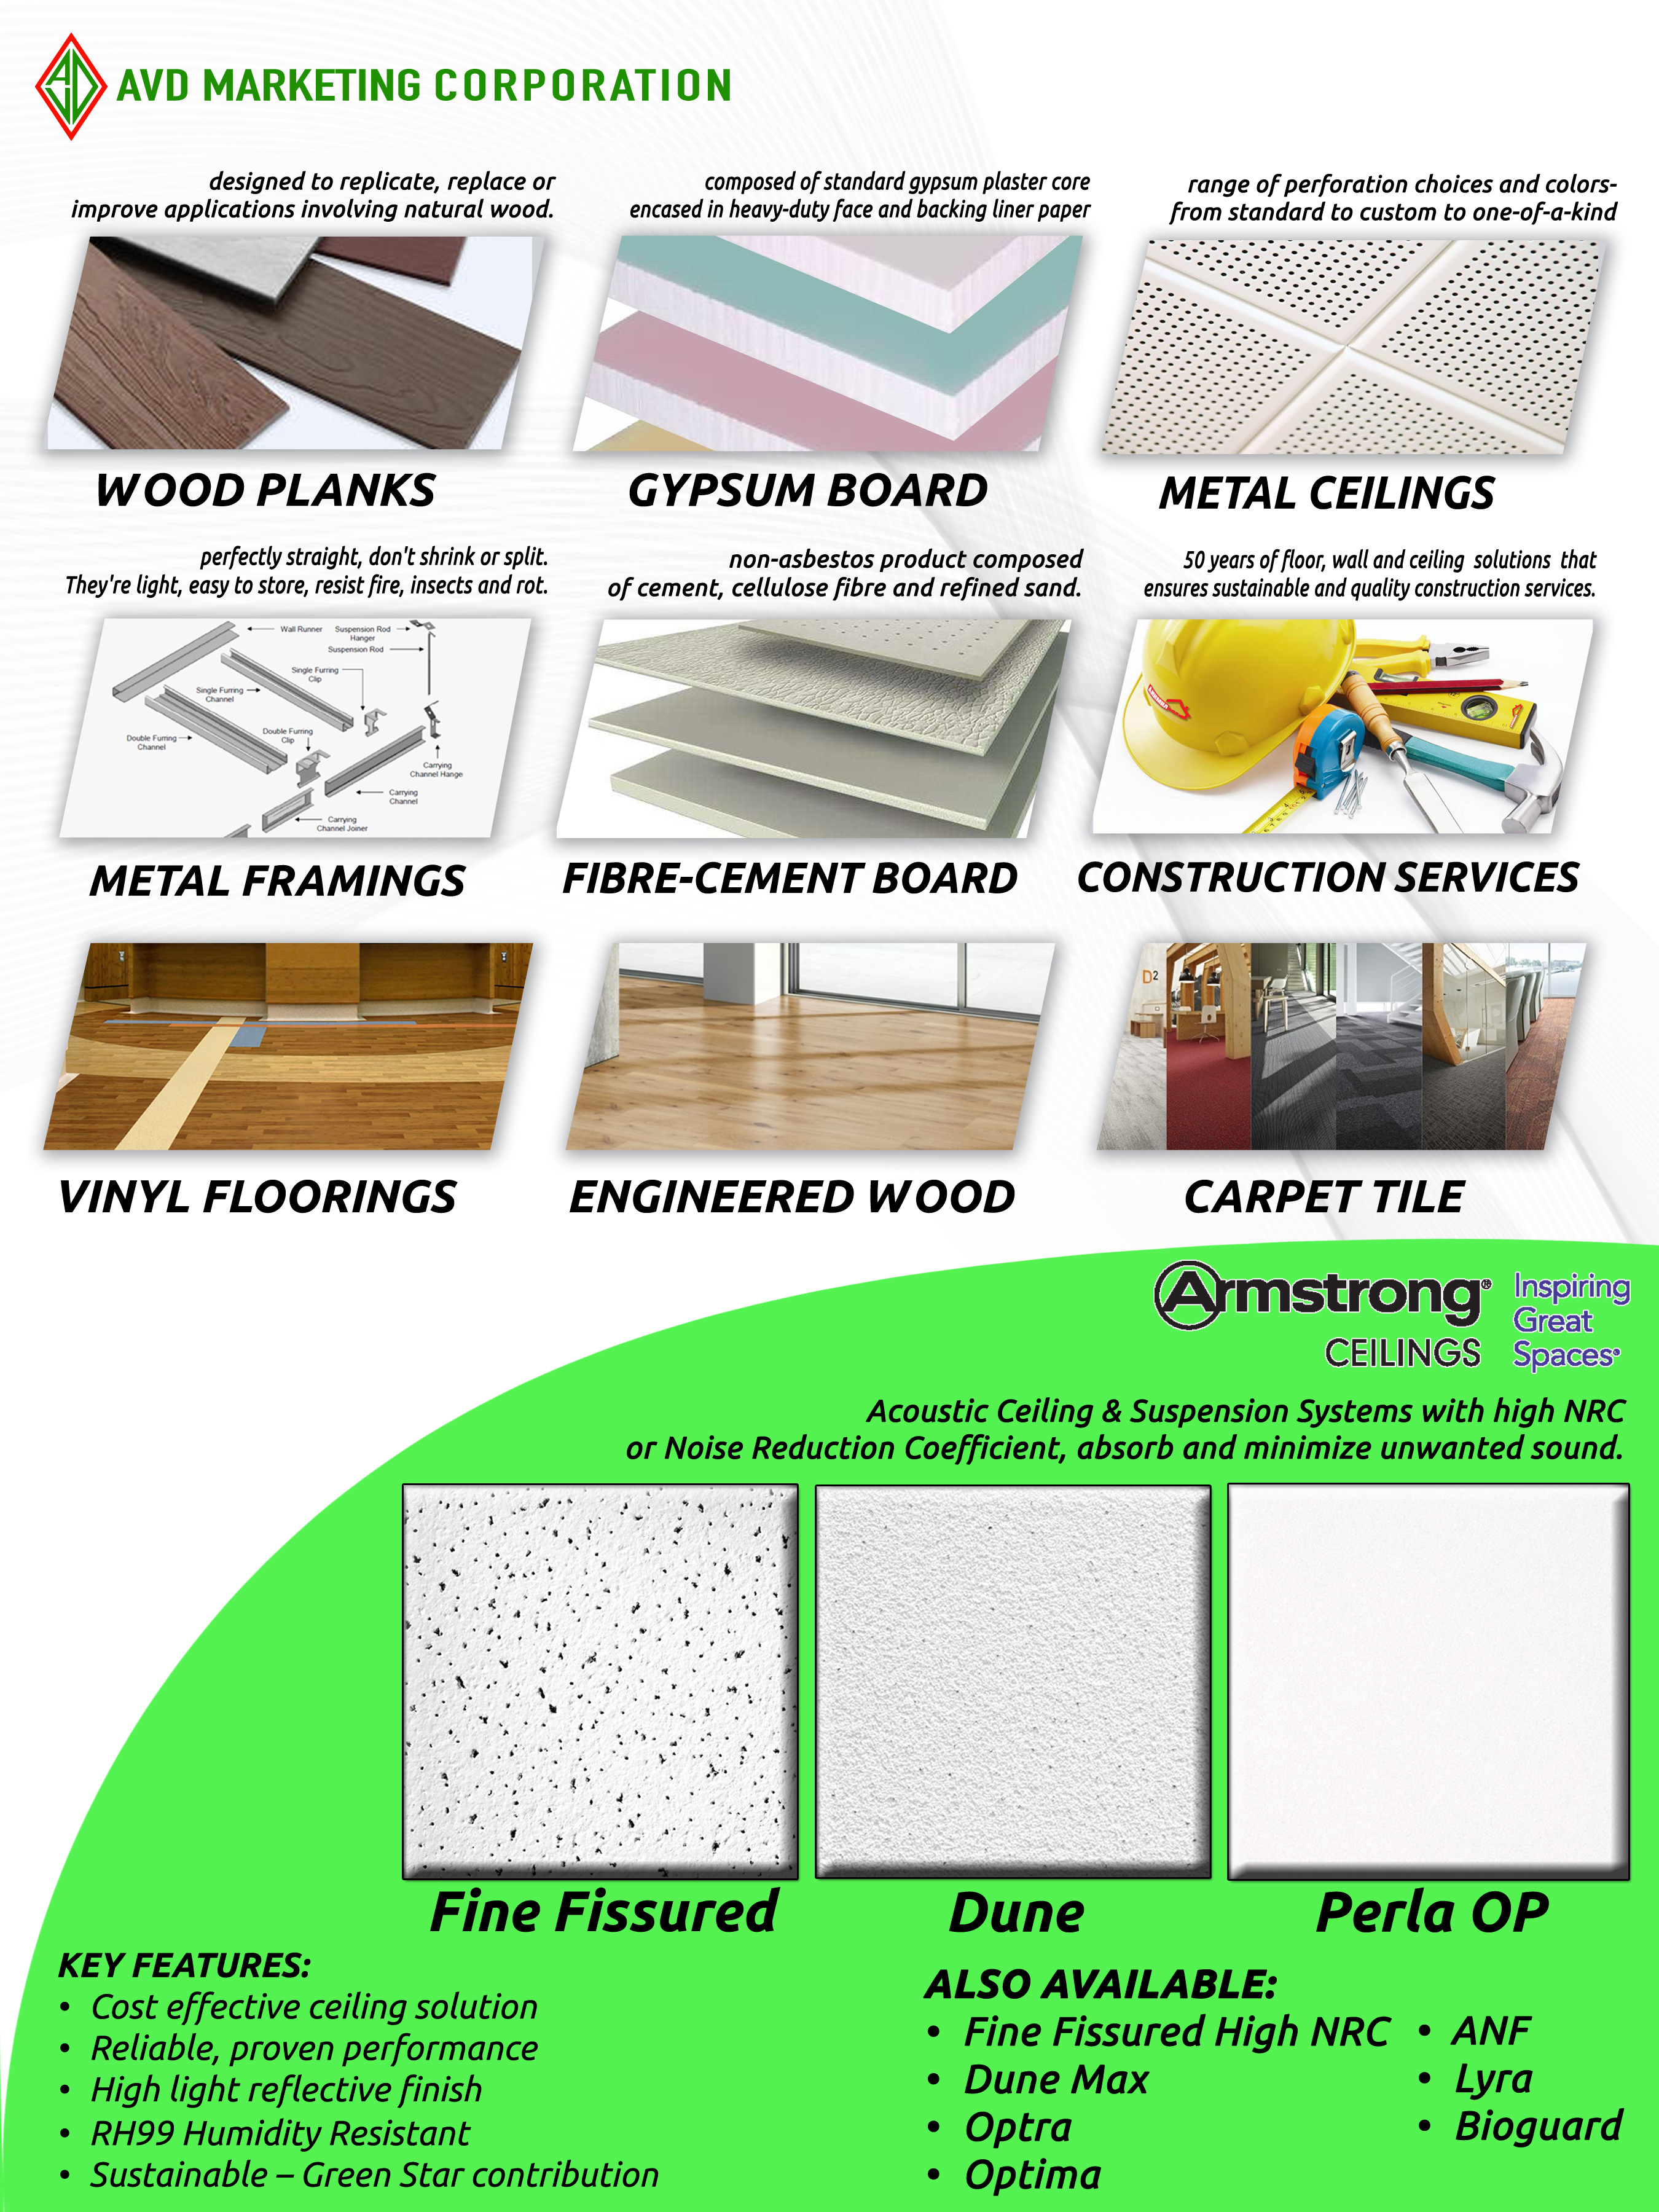 Avd Marketing Sustainable Construction Materials